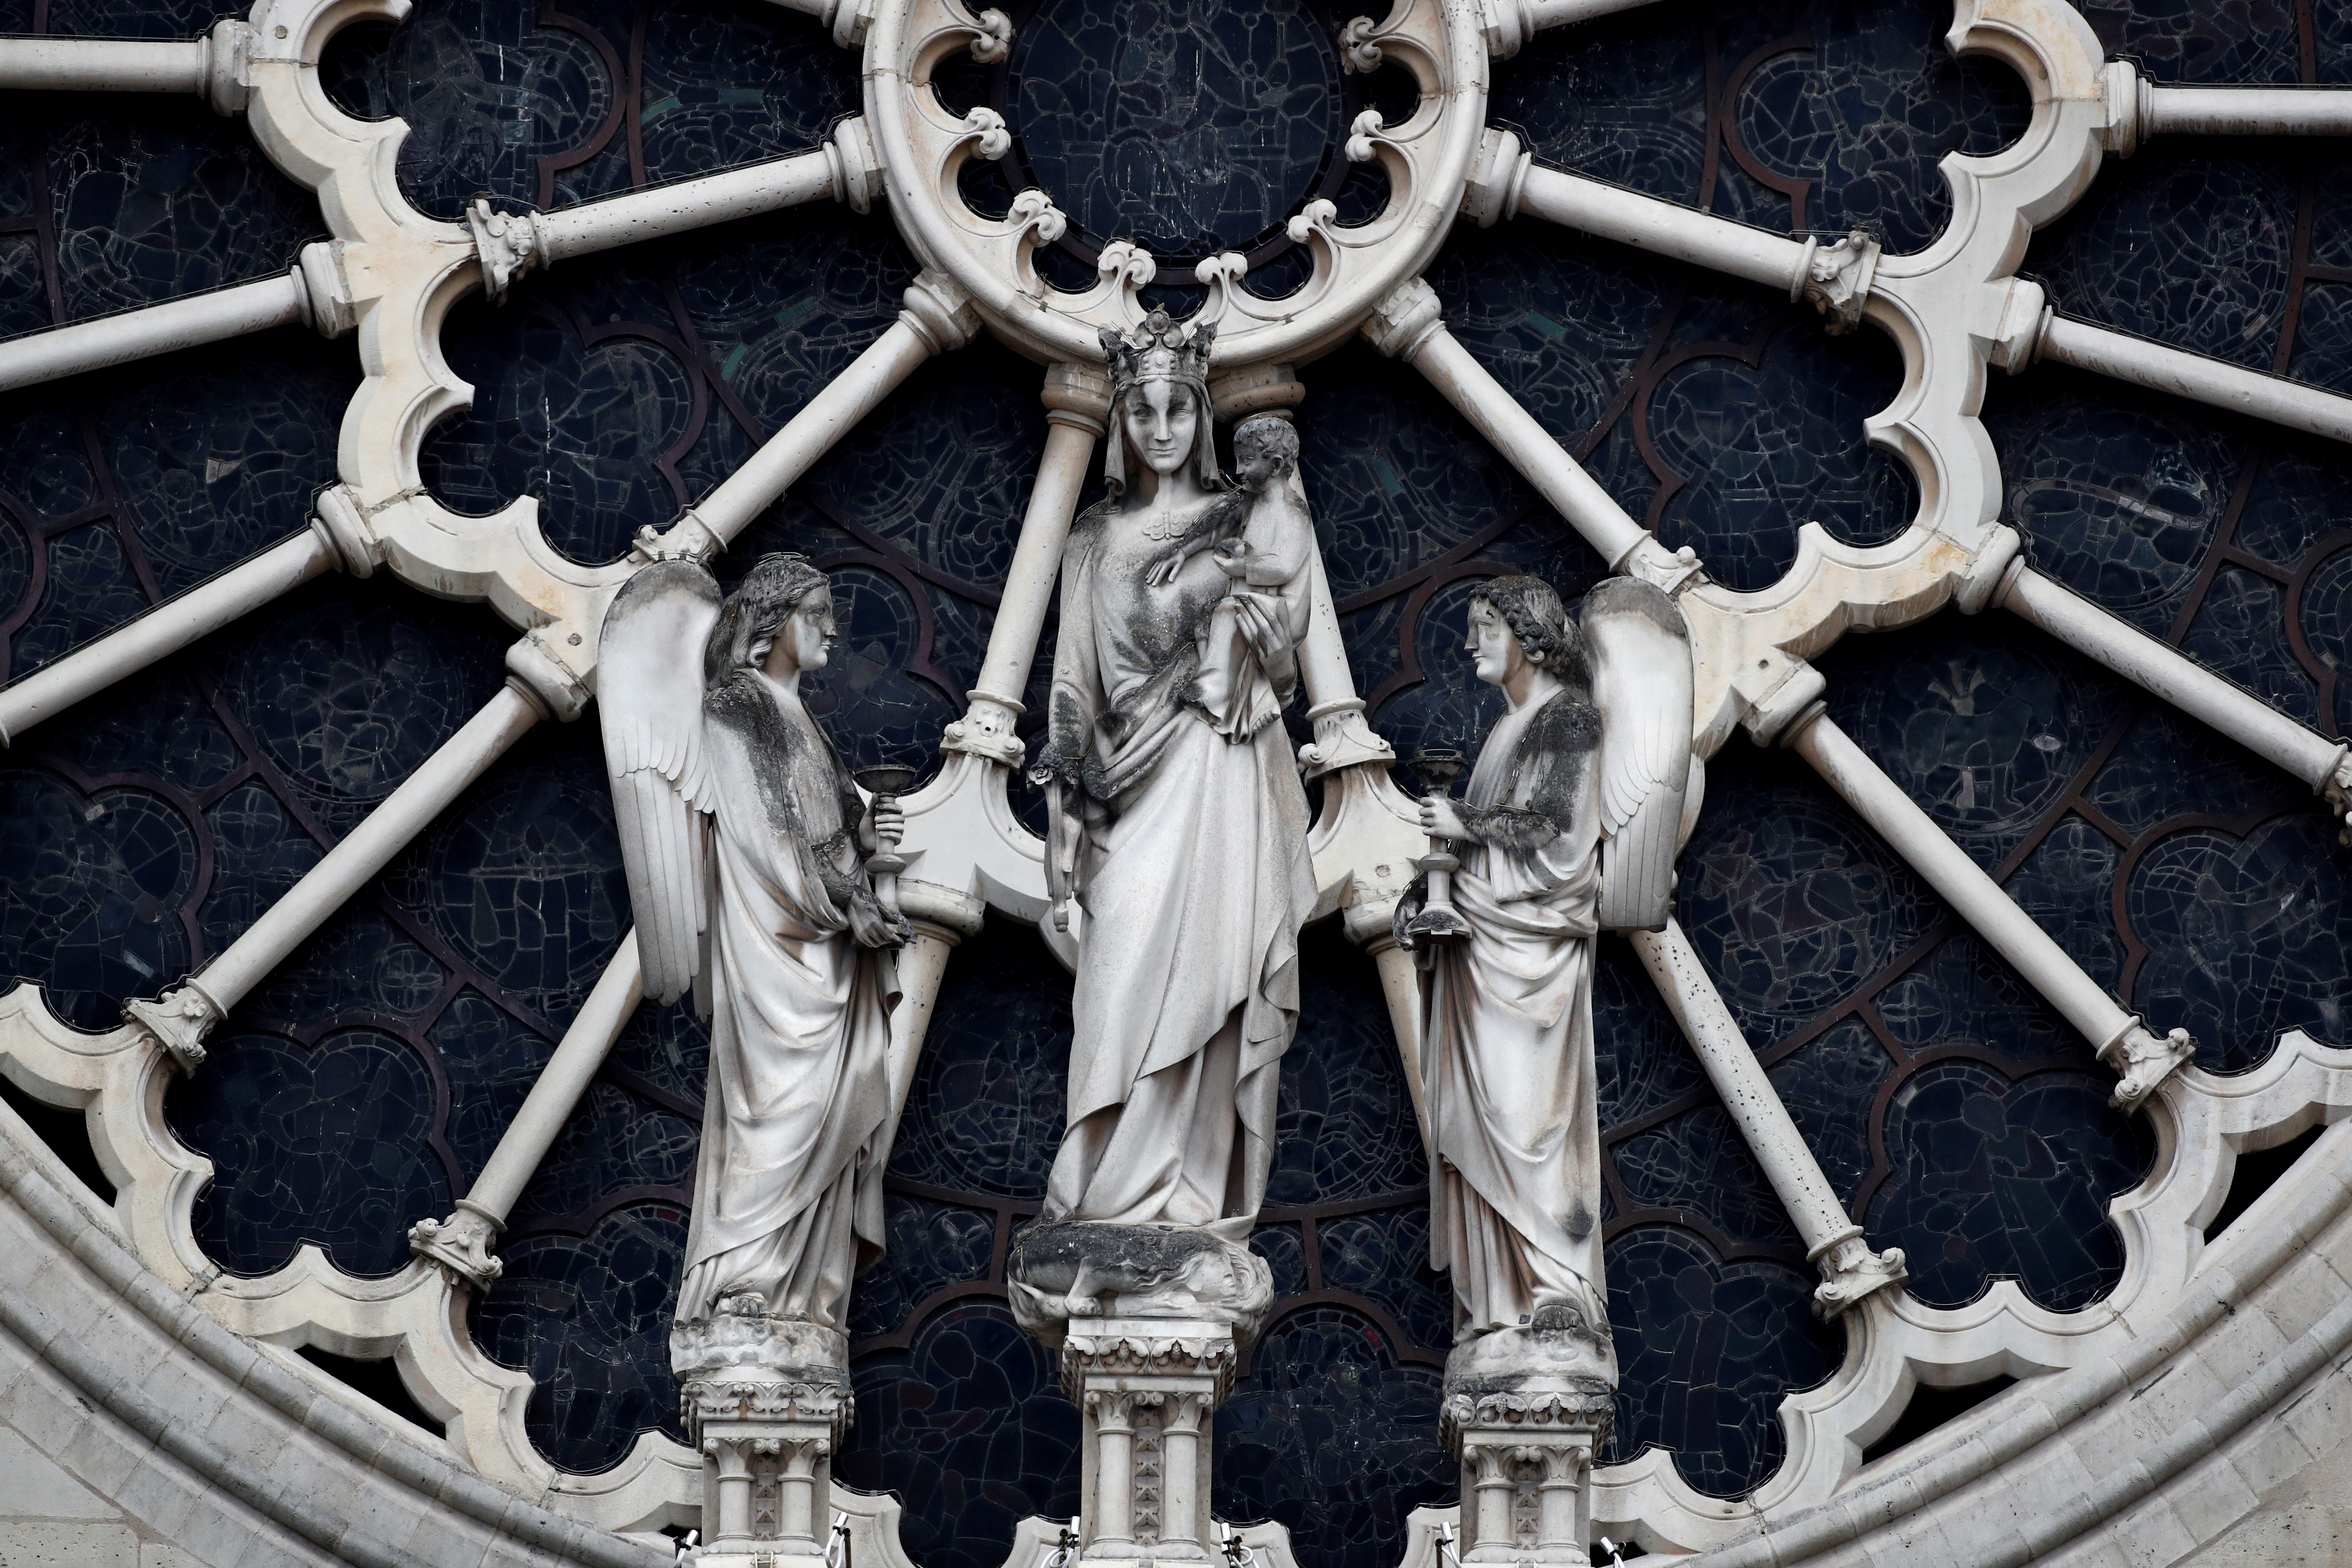 Notre-Dame's famed rose window spared but blaze harms priceless